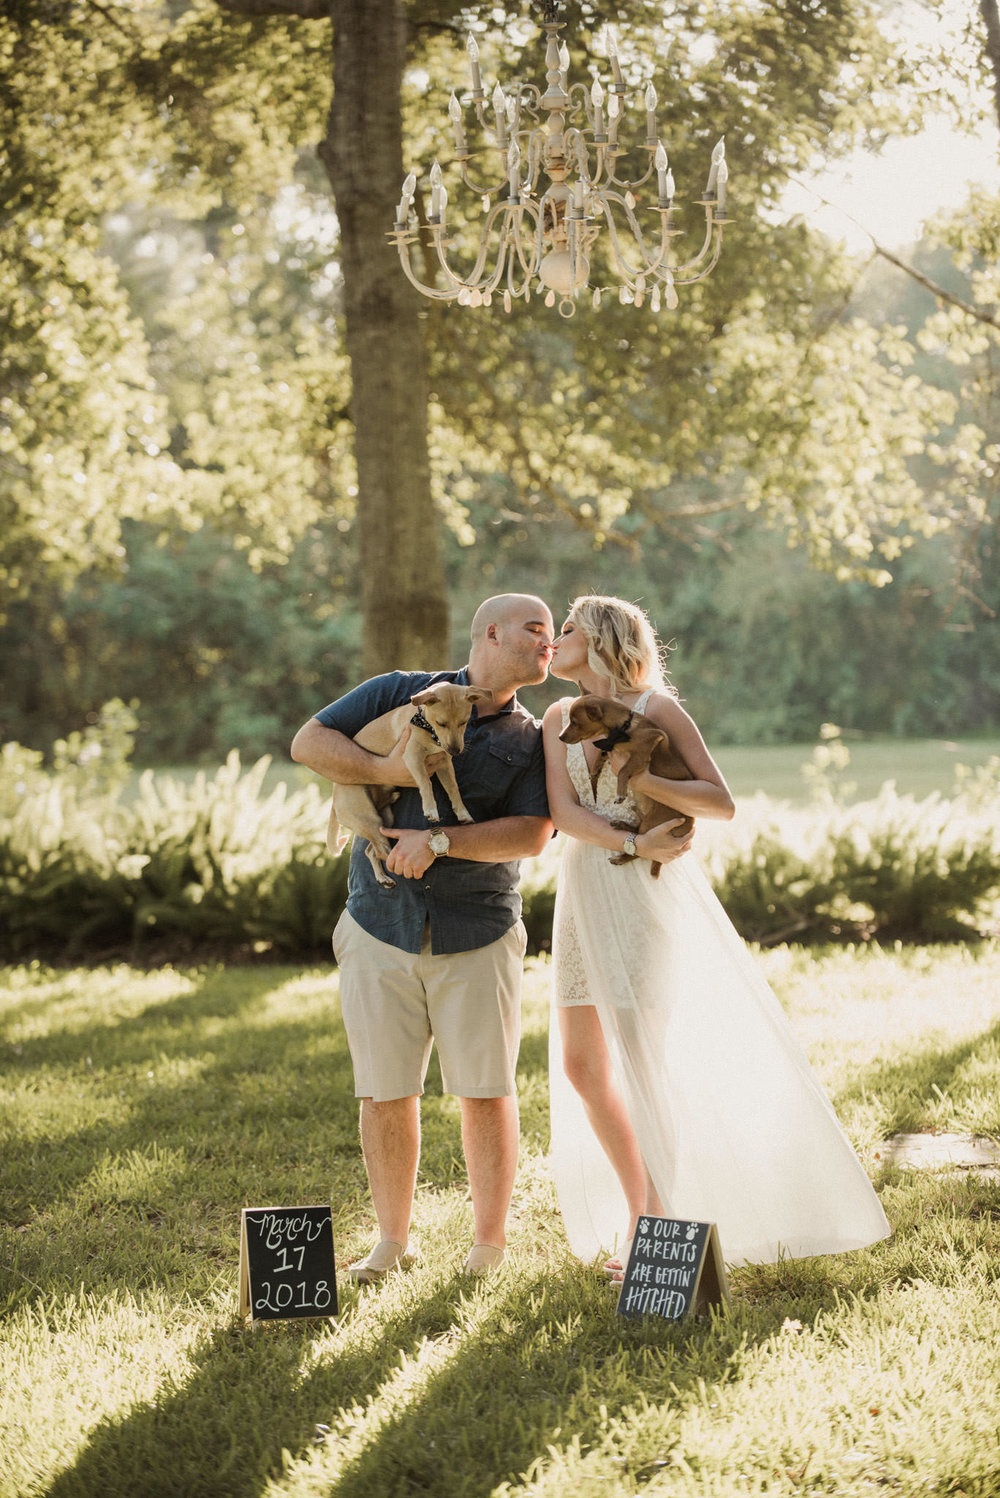 Plantation-elegance-dickinson-tx-engagement-wedding-venue-photographer-alvin